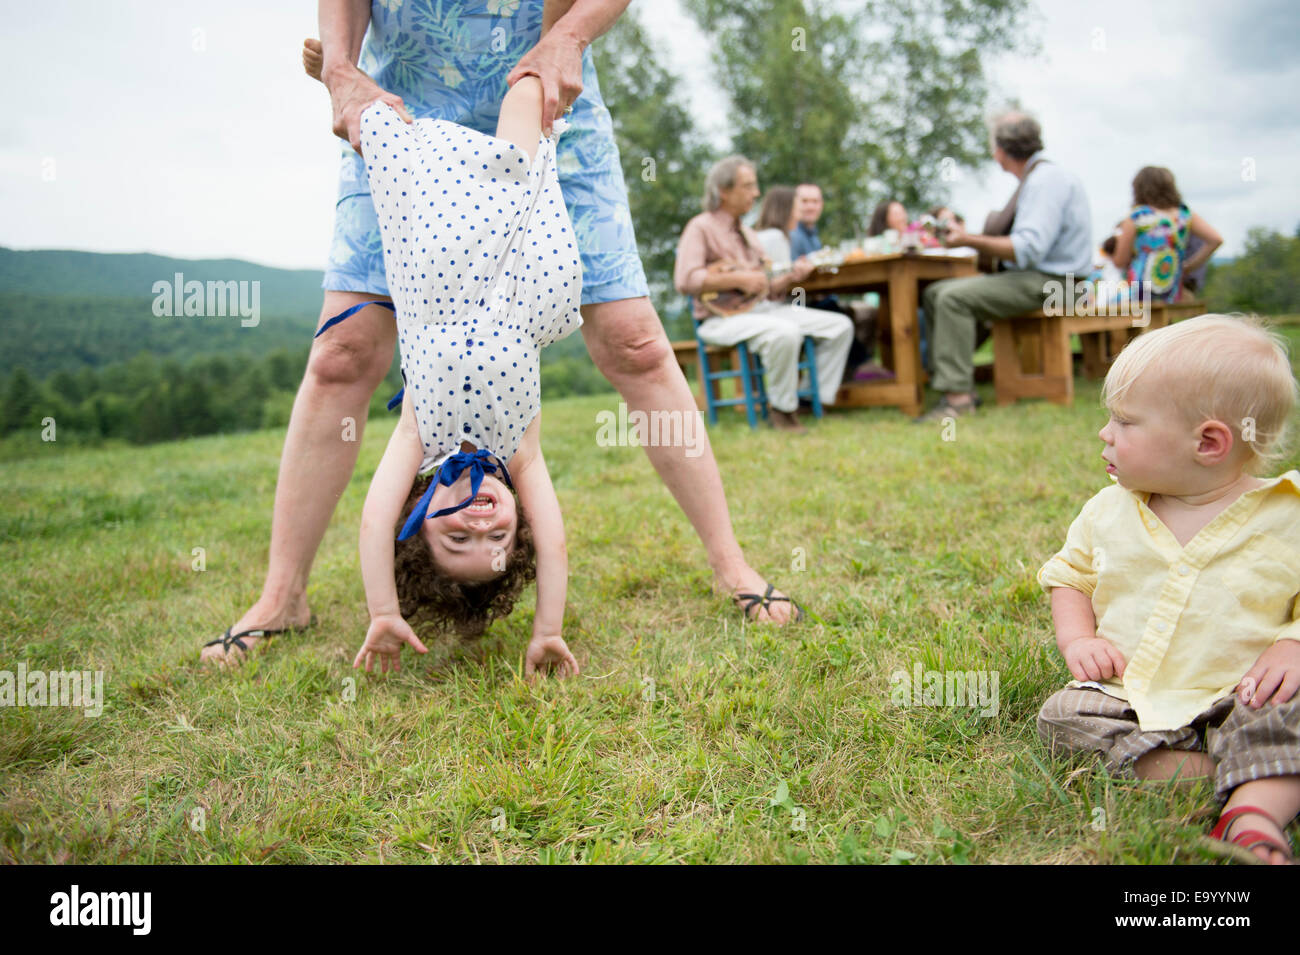 Female family member playfully holding toddler by legs at family gathering, outdoors Stock Foto